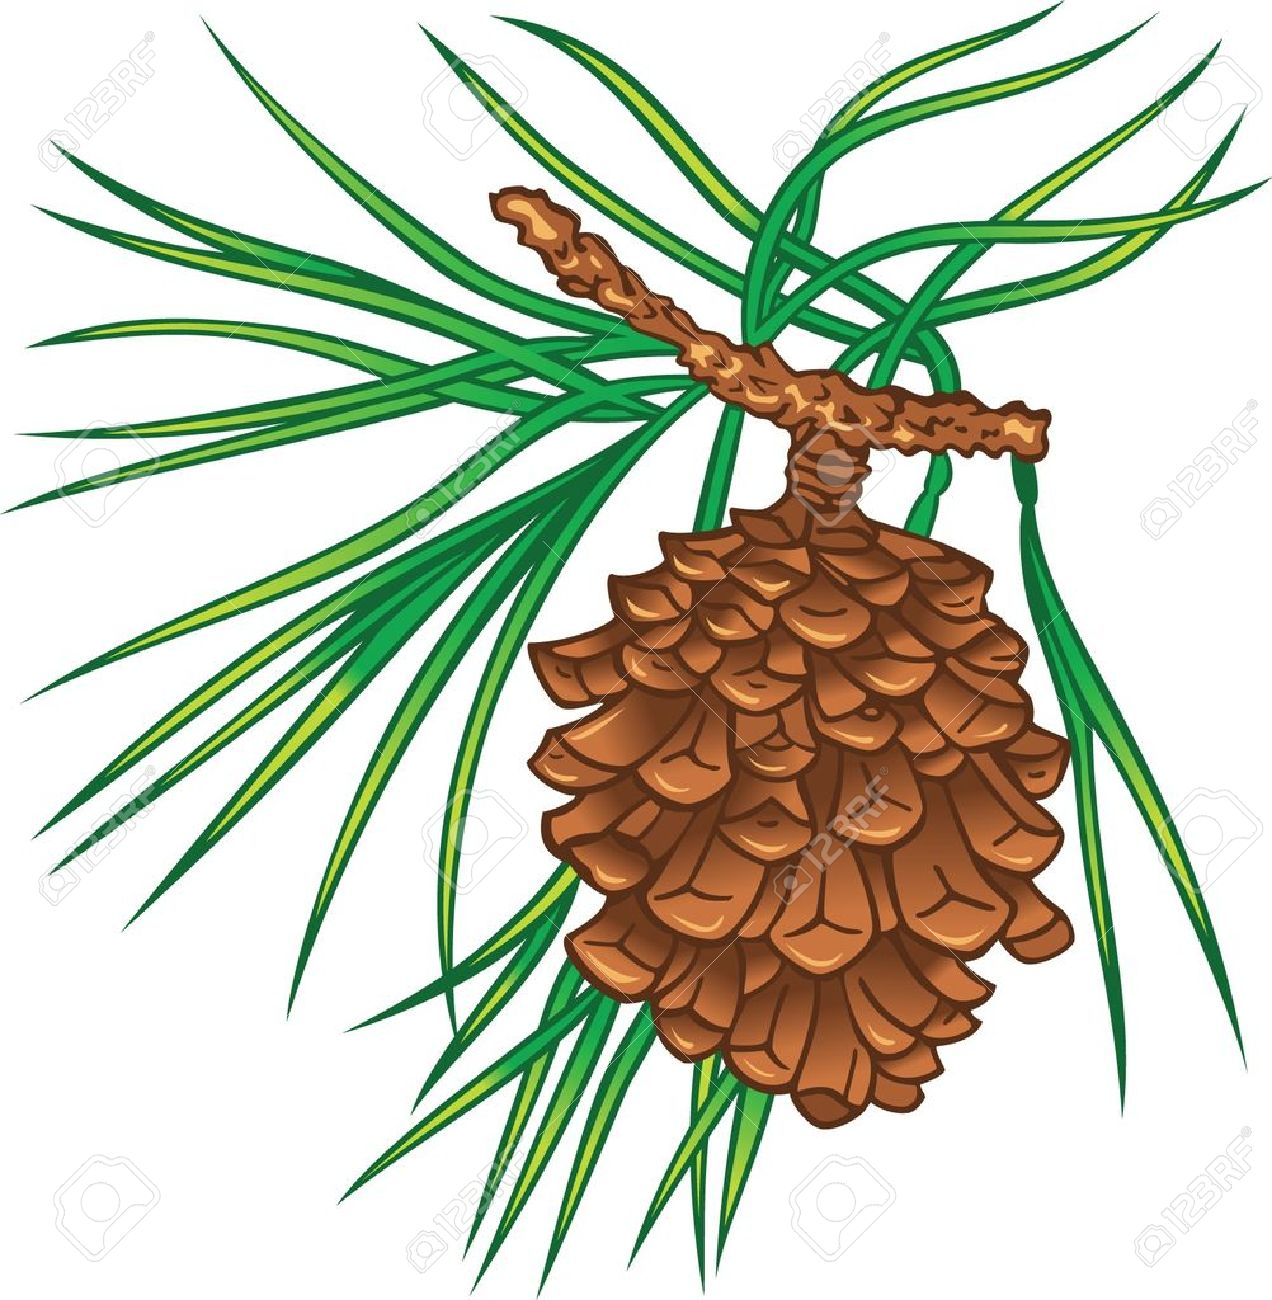 Pine clipart treee Vectors clipart Clipground Free Green